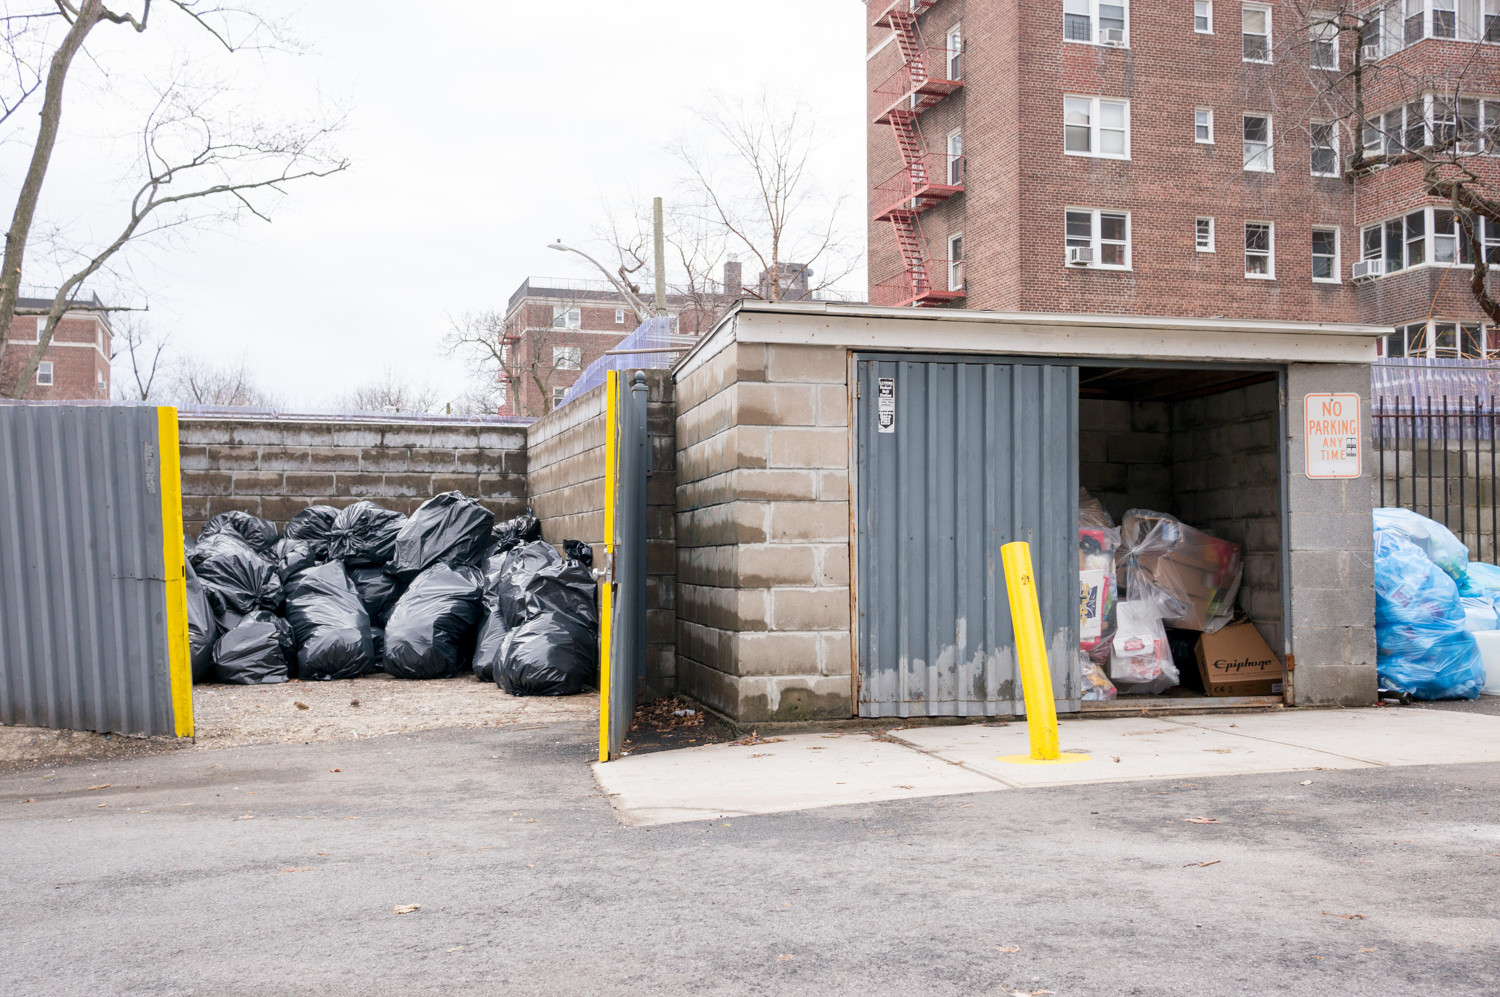 A row of dumpsters and a bleak cinder block wall on Netherland Avenue between West 254th and West 256th streets block pedestrian access. Community Board 8's traffic and transportation committee has opposed talk of possibly building a walkway on Netherland connecting West 256th and West 254th streets.